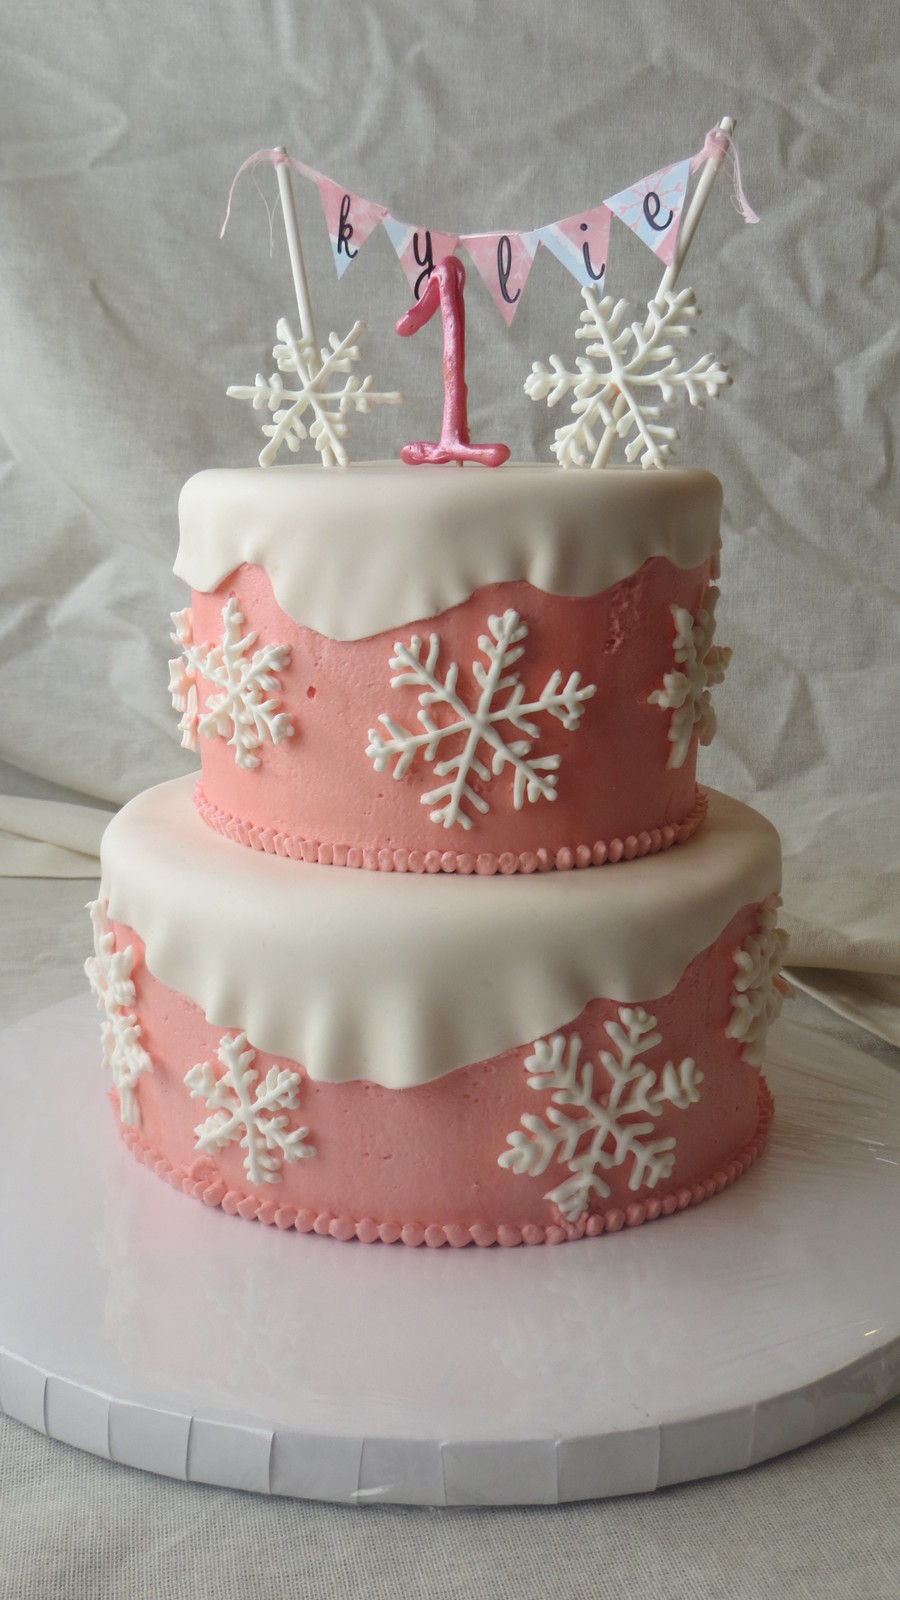 Cute Baby Girl Wallpapers Free Winter Onederland Cake Royal Icing Snowflakes Buttercream